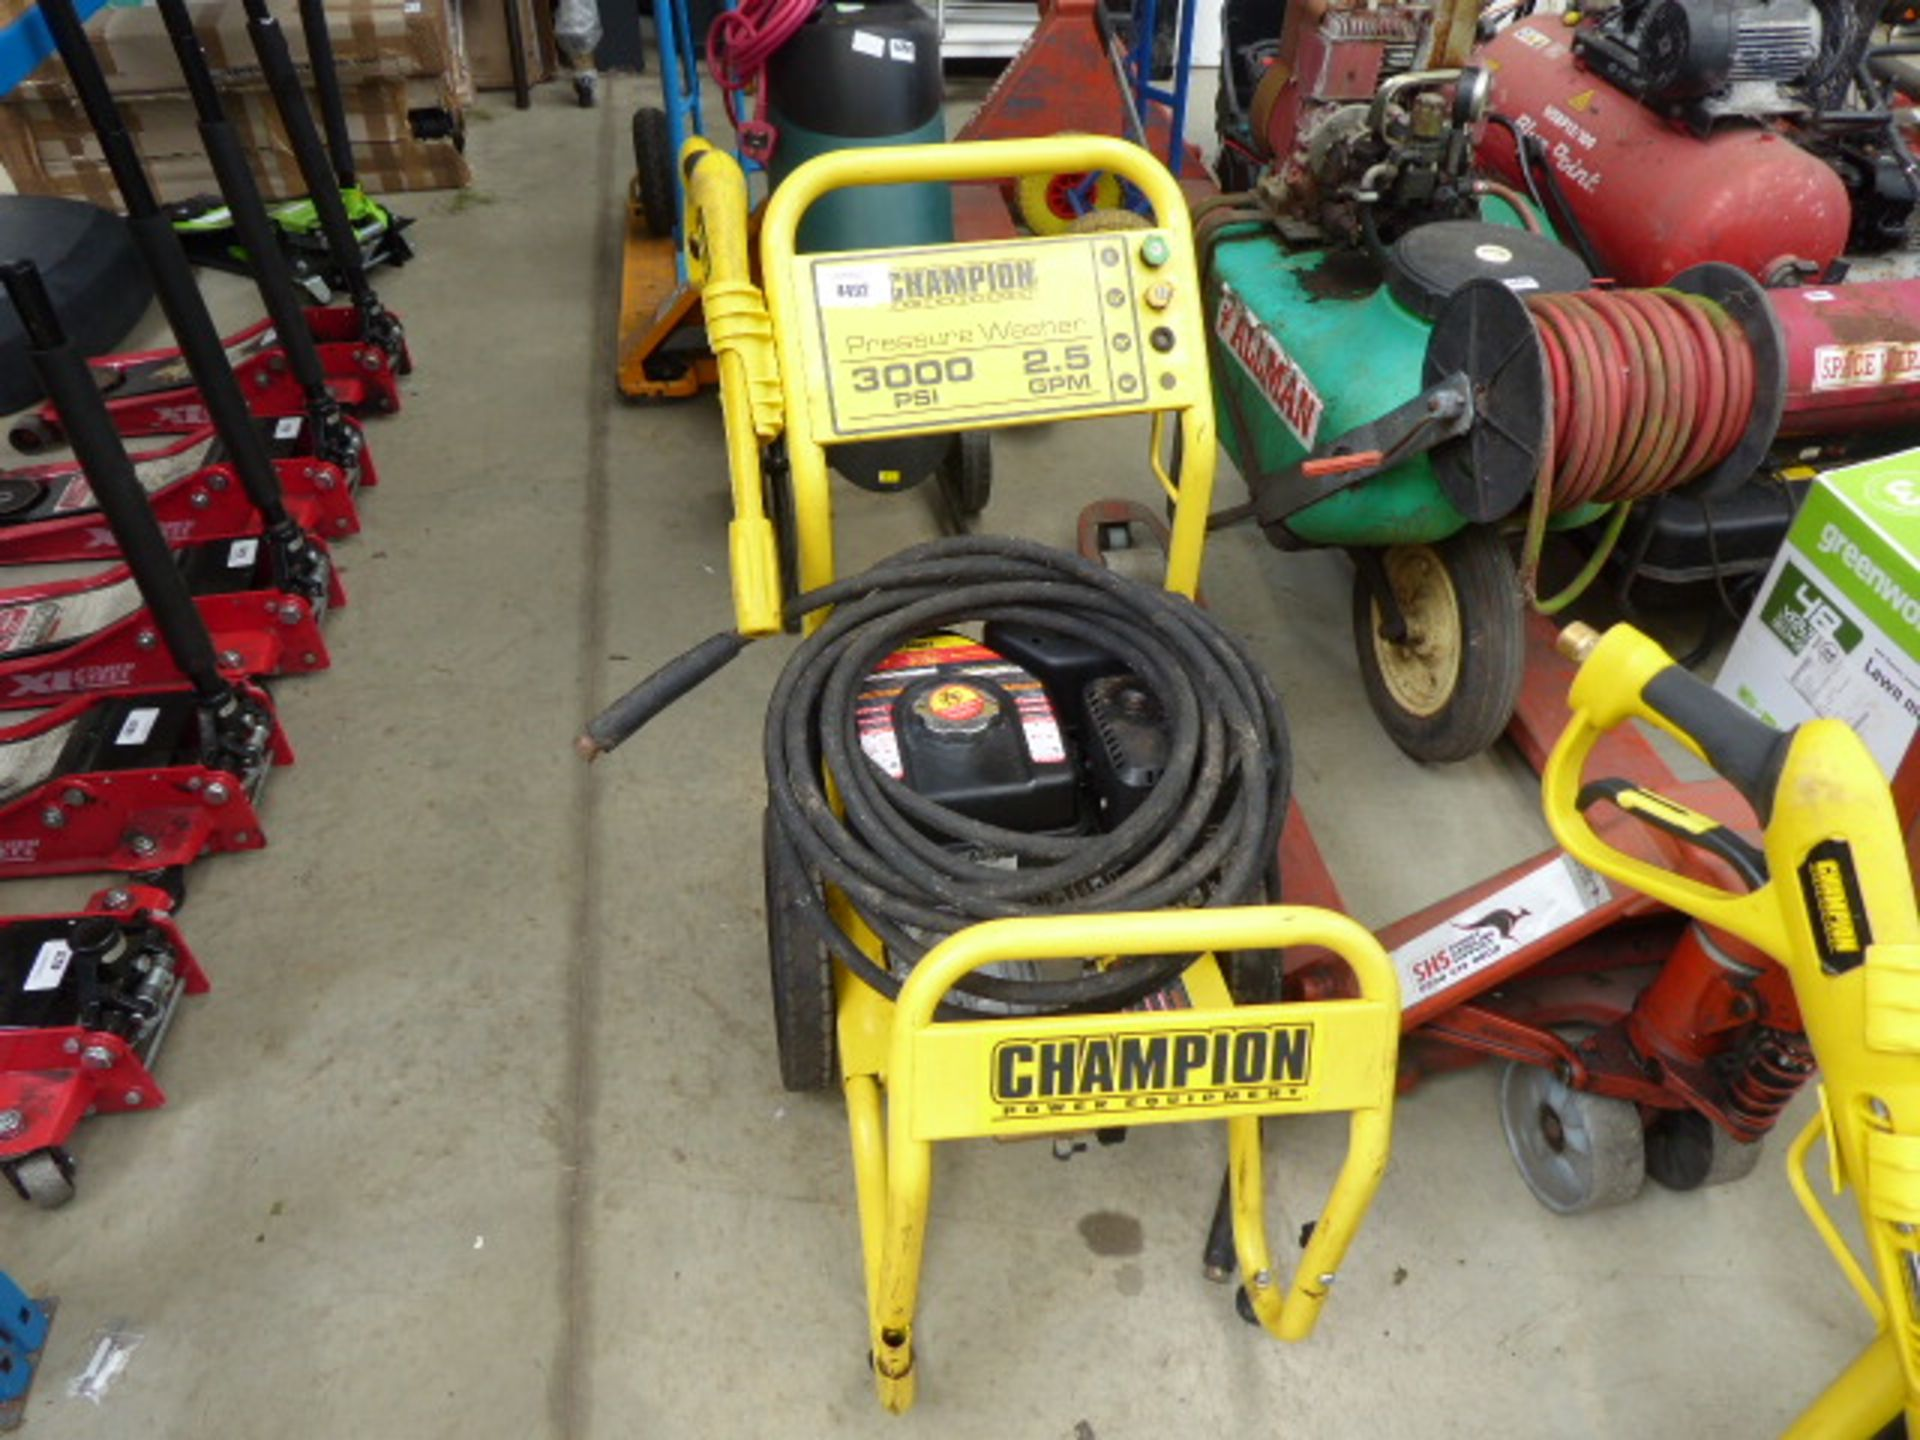 Lot 4492 - Champion petrol powered pressure washer with part lance and hose